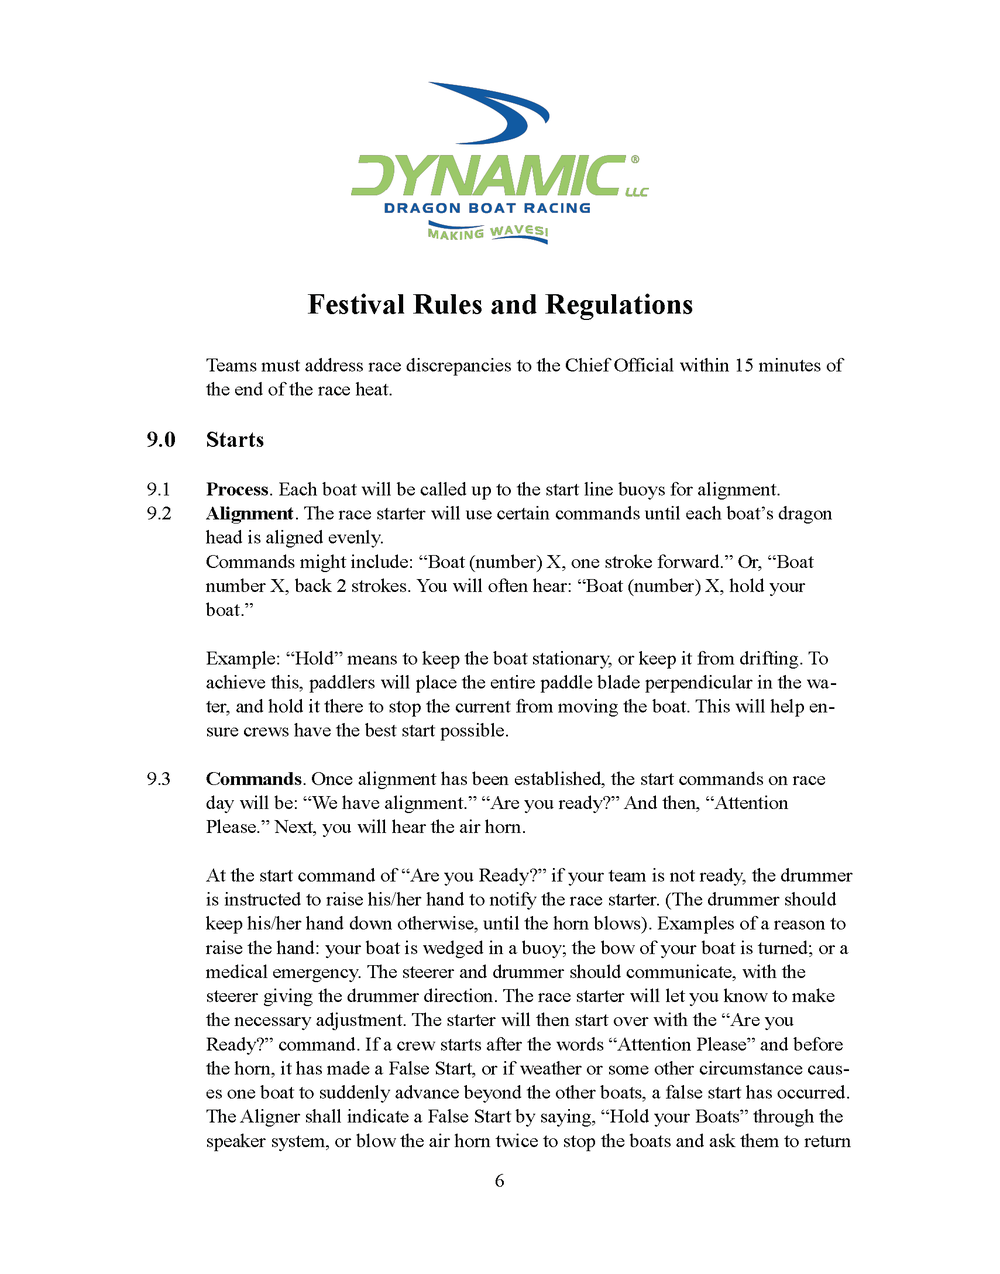 Dynamic_Festival_RulesRegulations_2019_Page_06.png